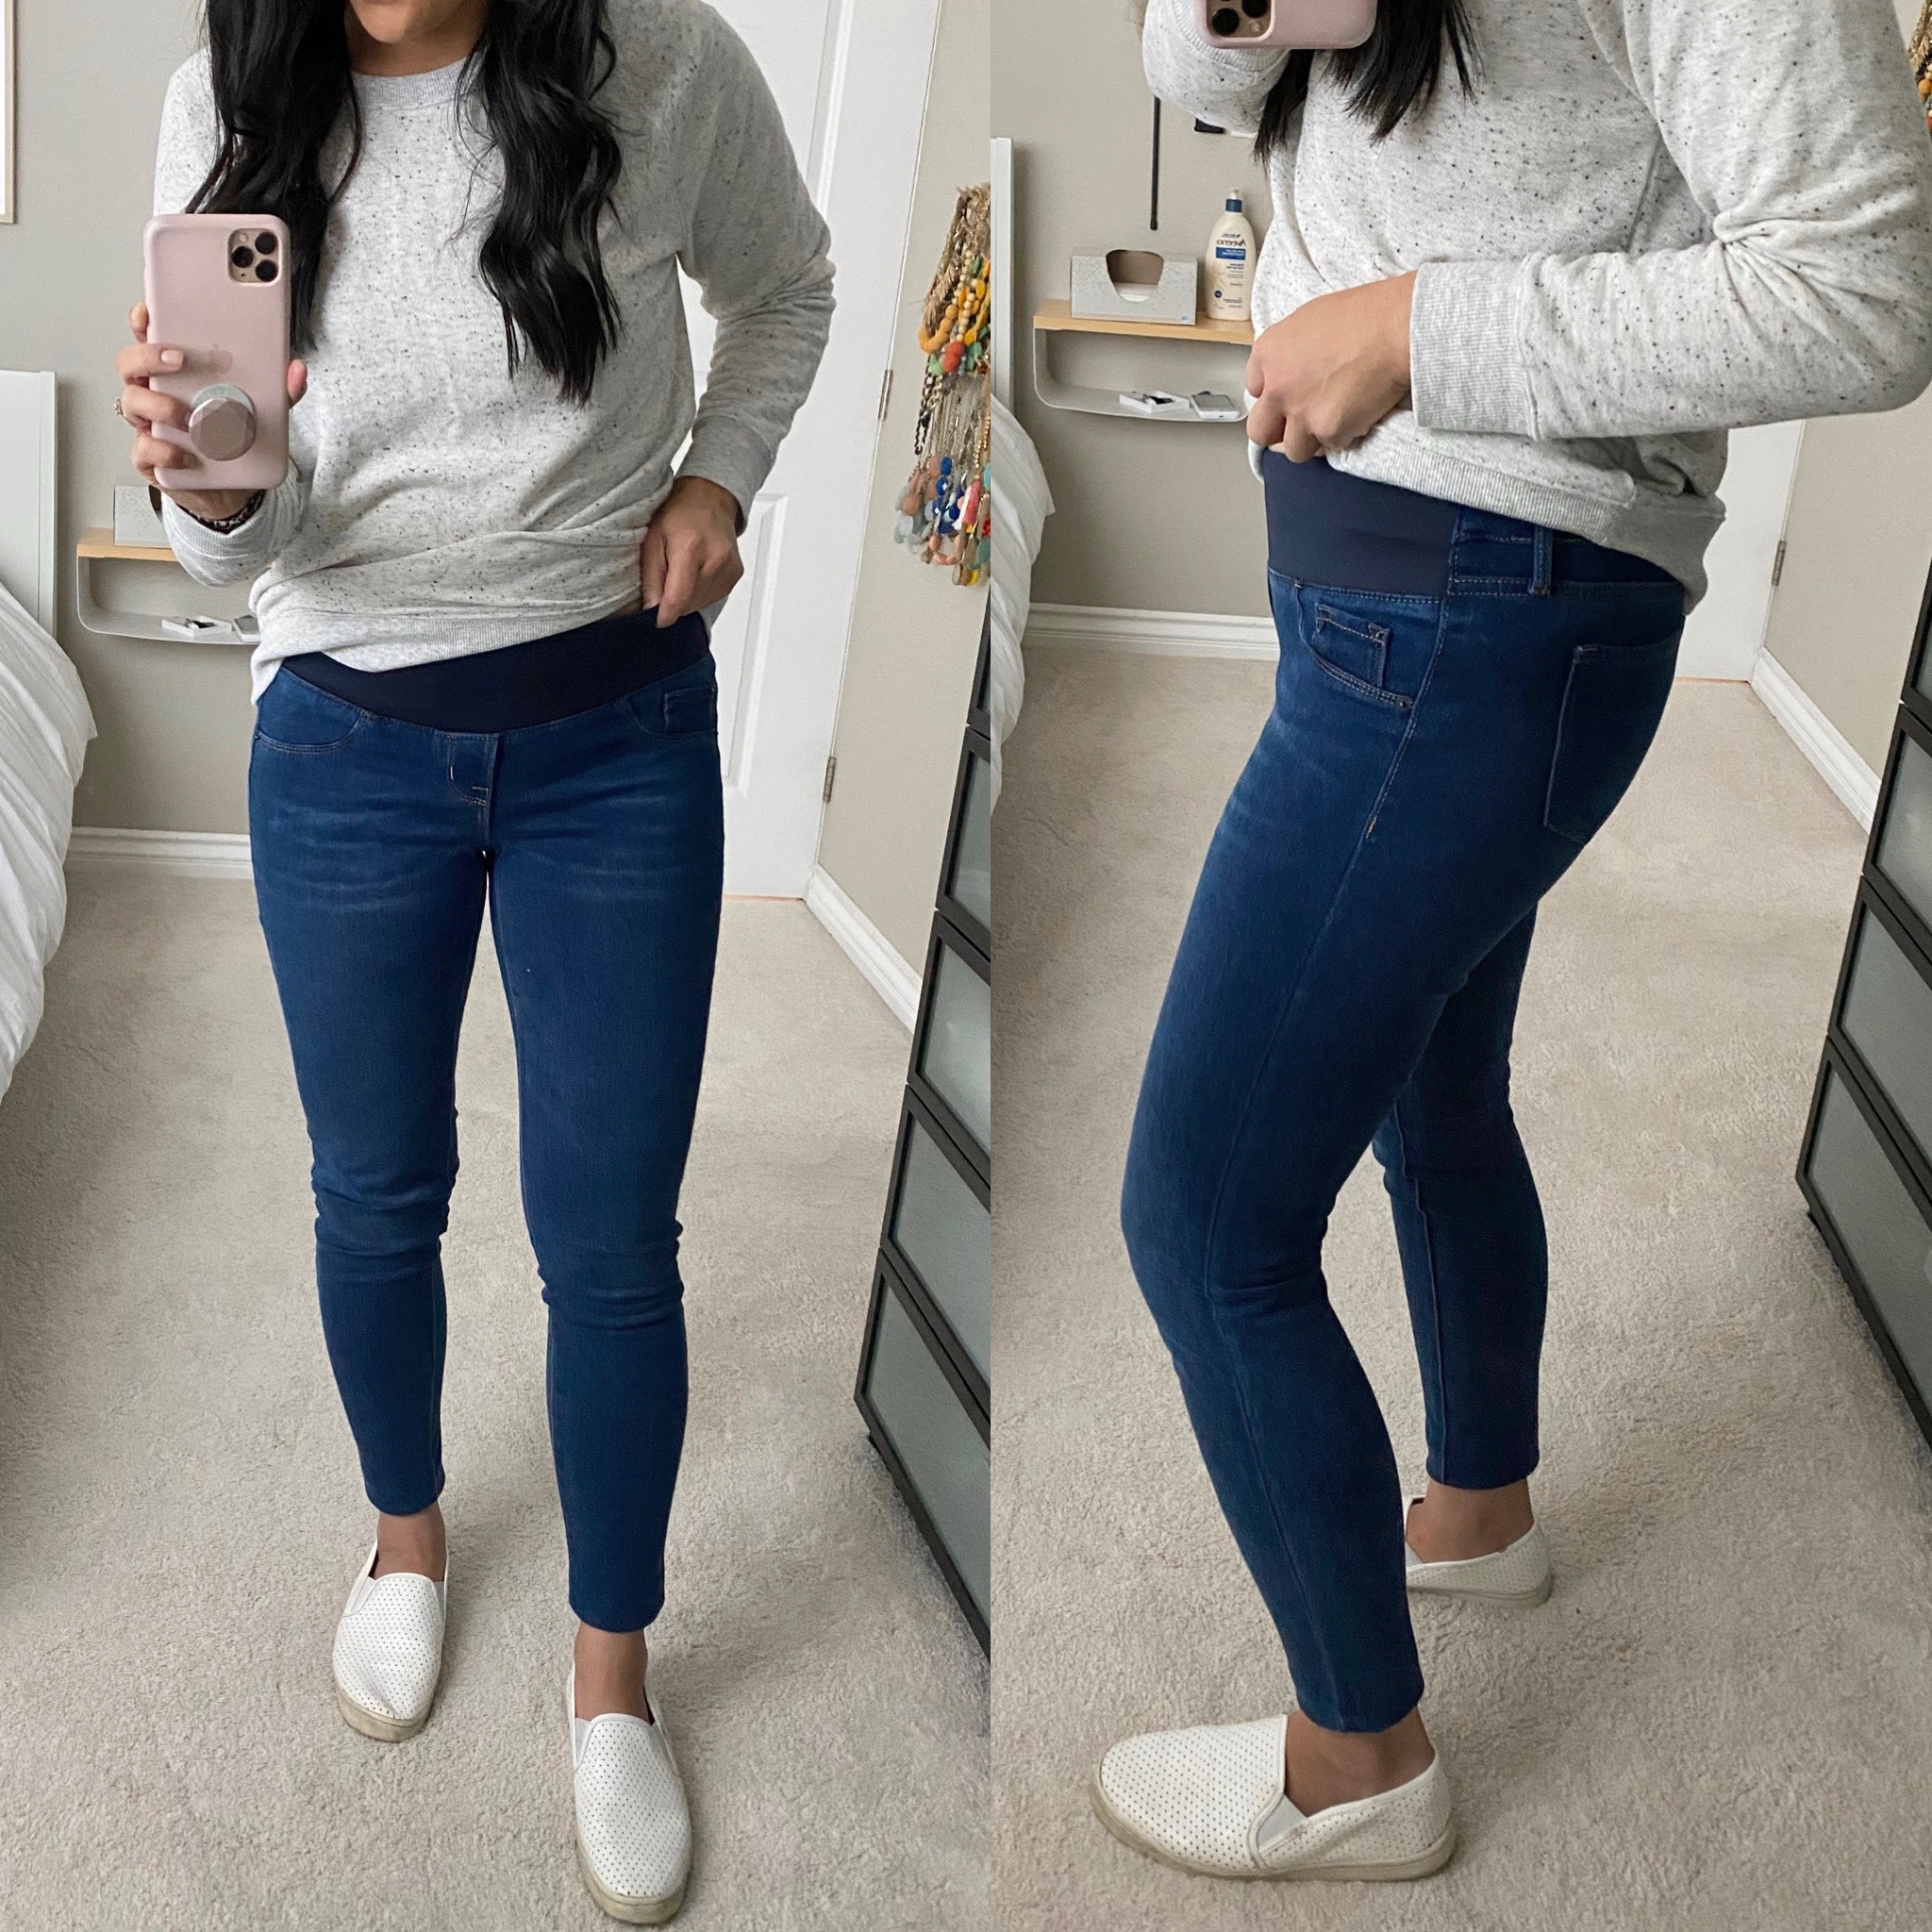 Casual Winter Outfit: gray speckled sweatshirt + maternity skinny jeans